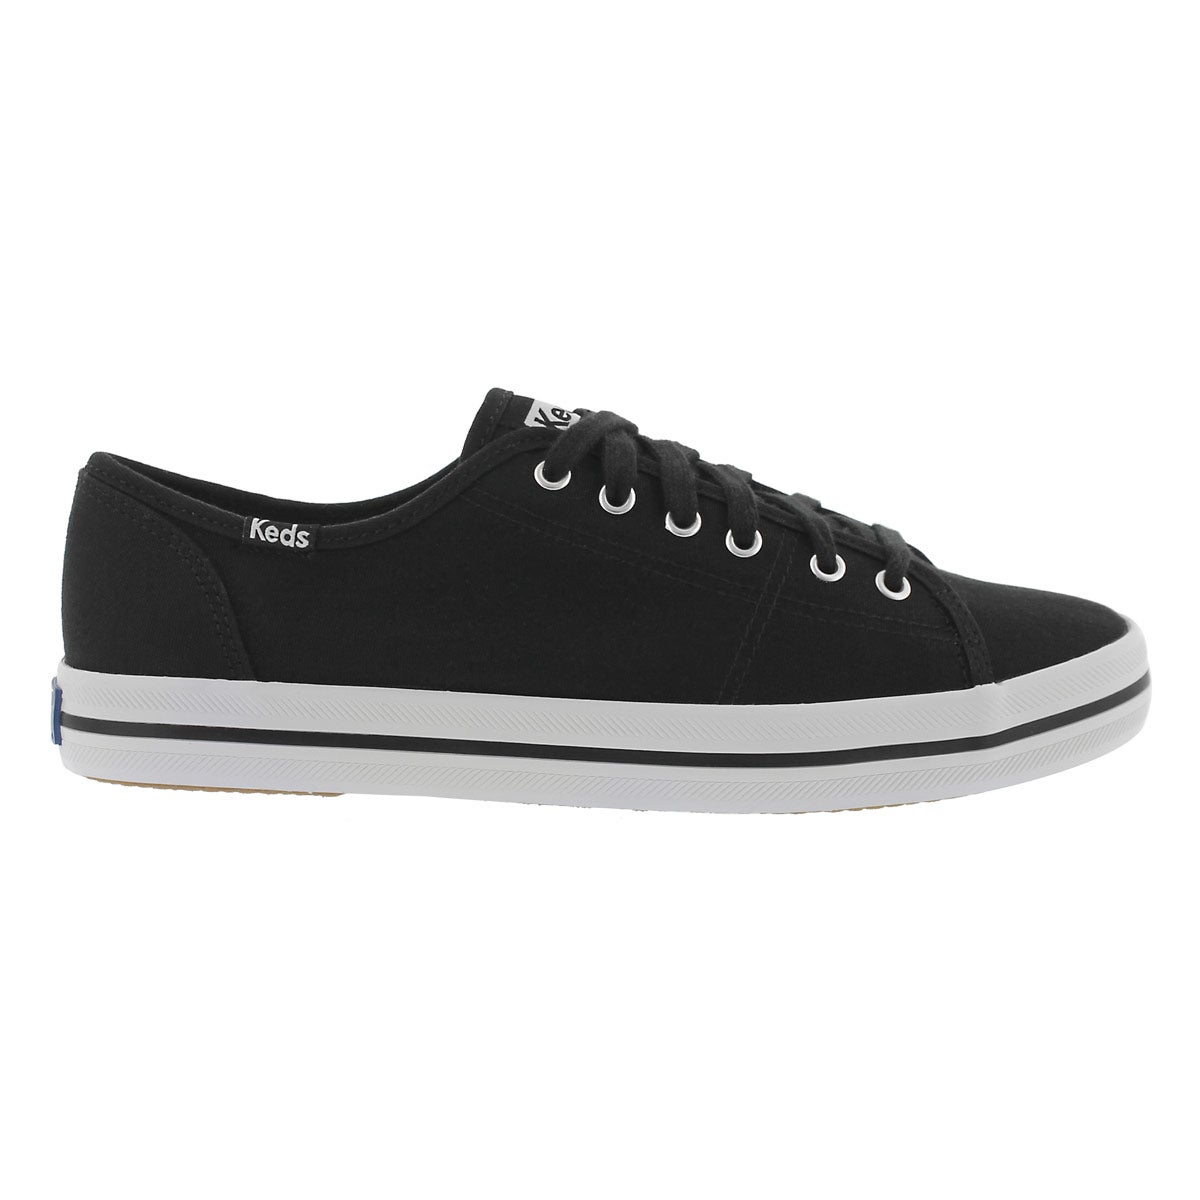 Lds Kickstart black CVO canvas sneaker